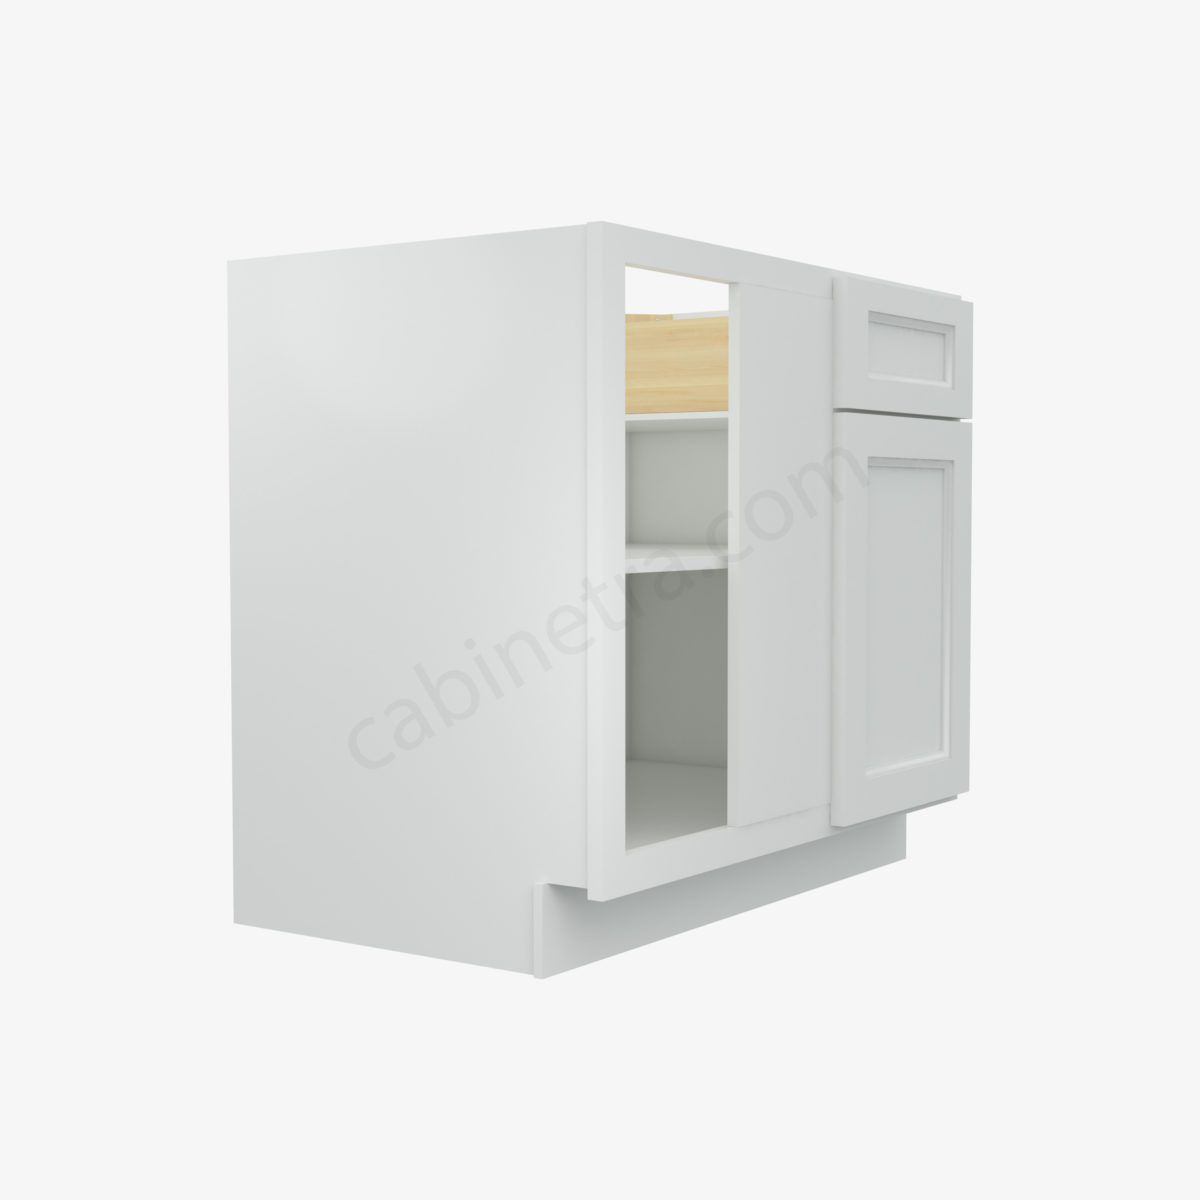 TW BBLC39 42 36W 4 Forevermark Uptown White Cabinetra scaled